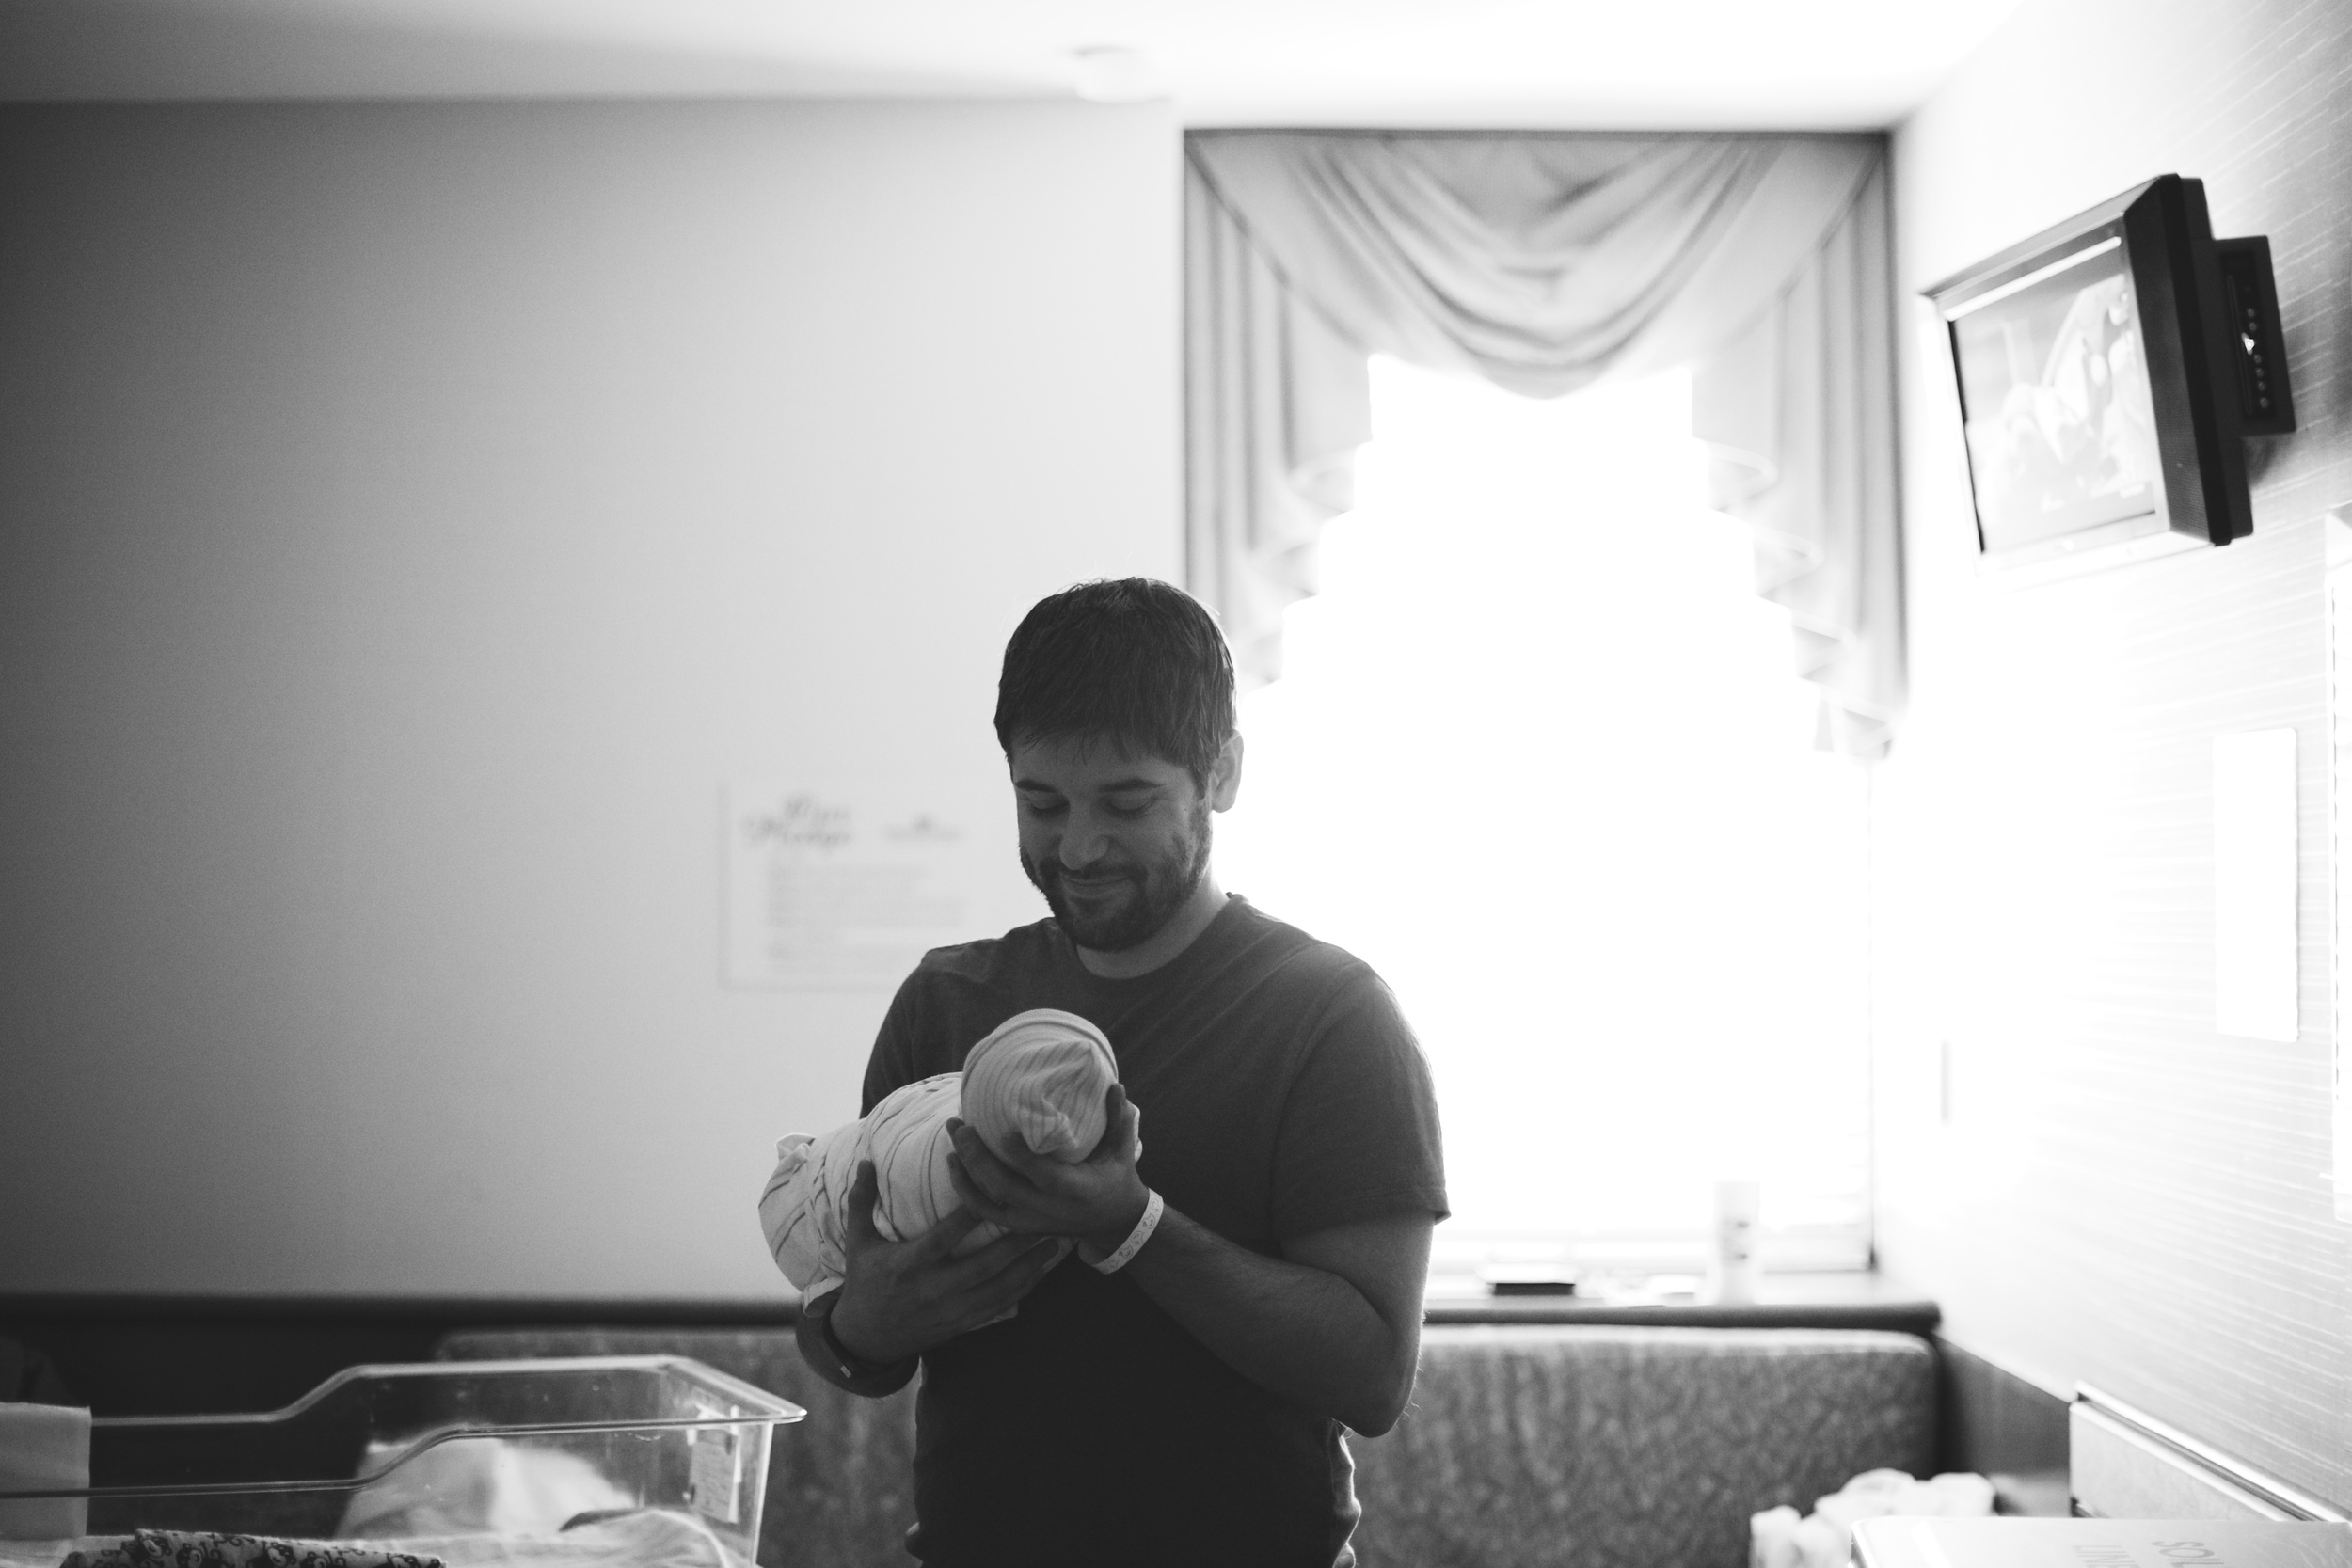 WilliamsNewborn2014_BeriIrving 1028.jpg